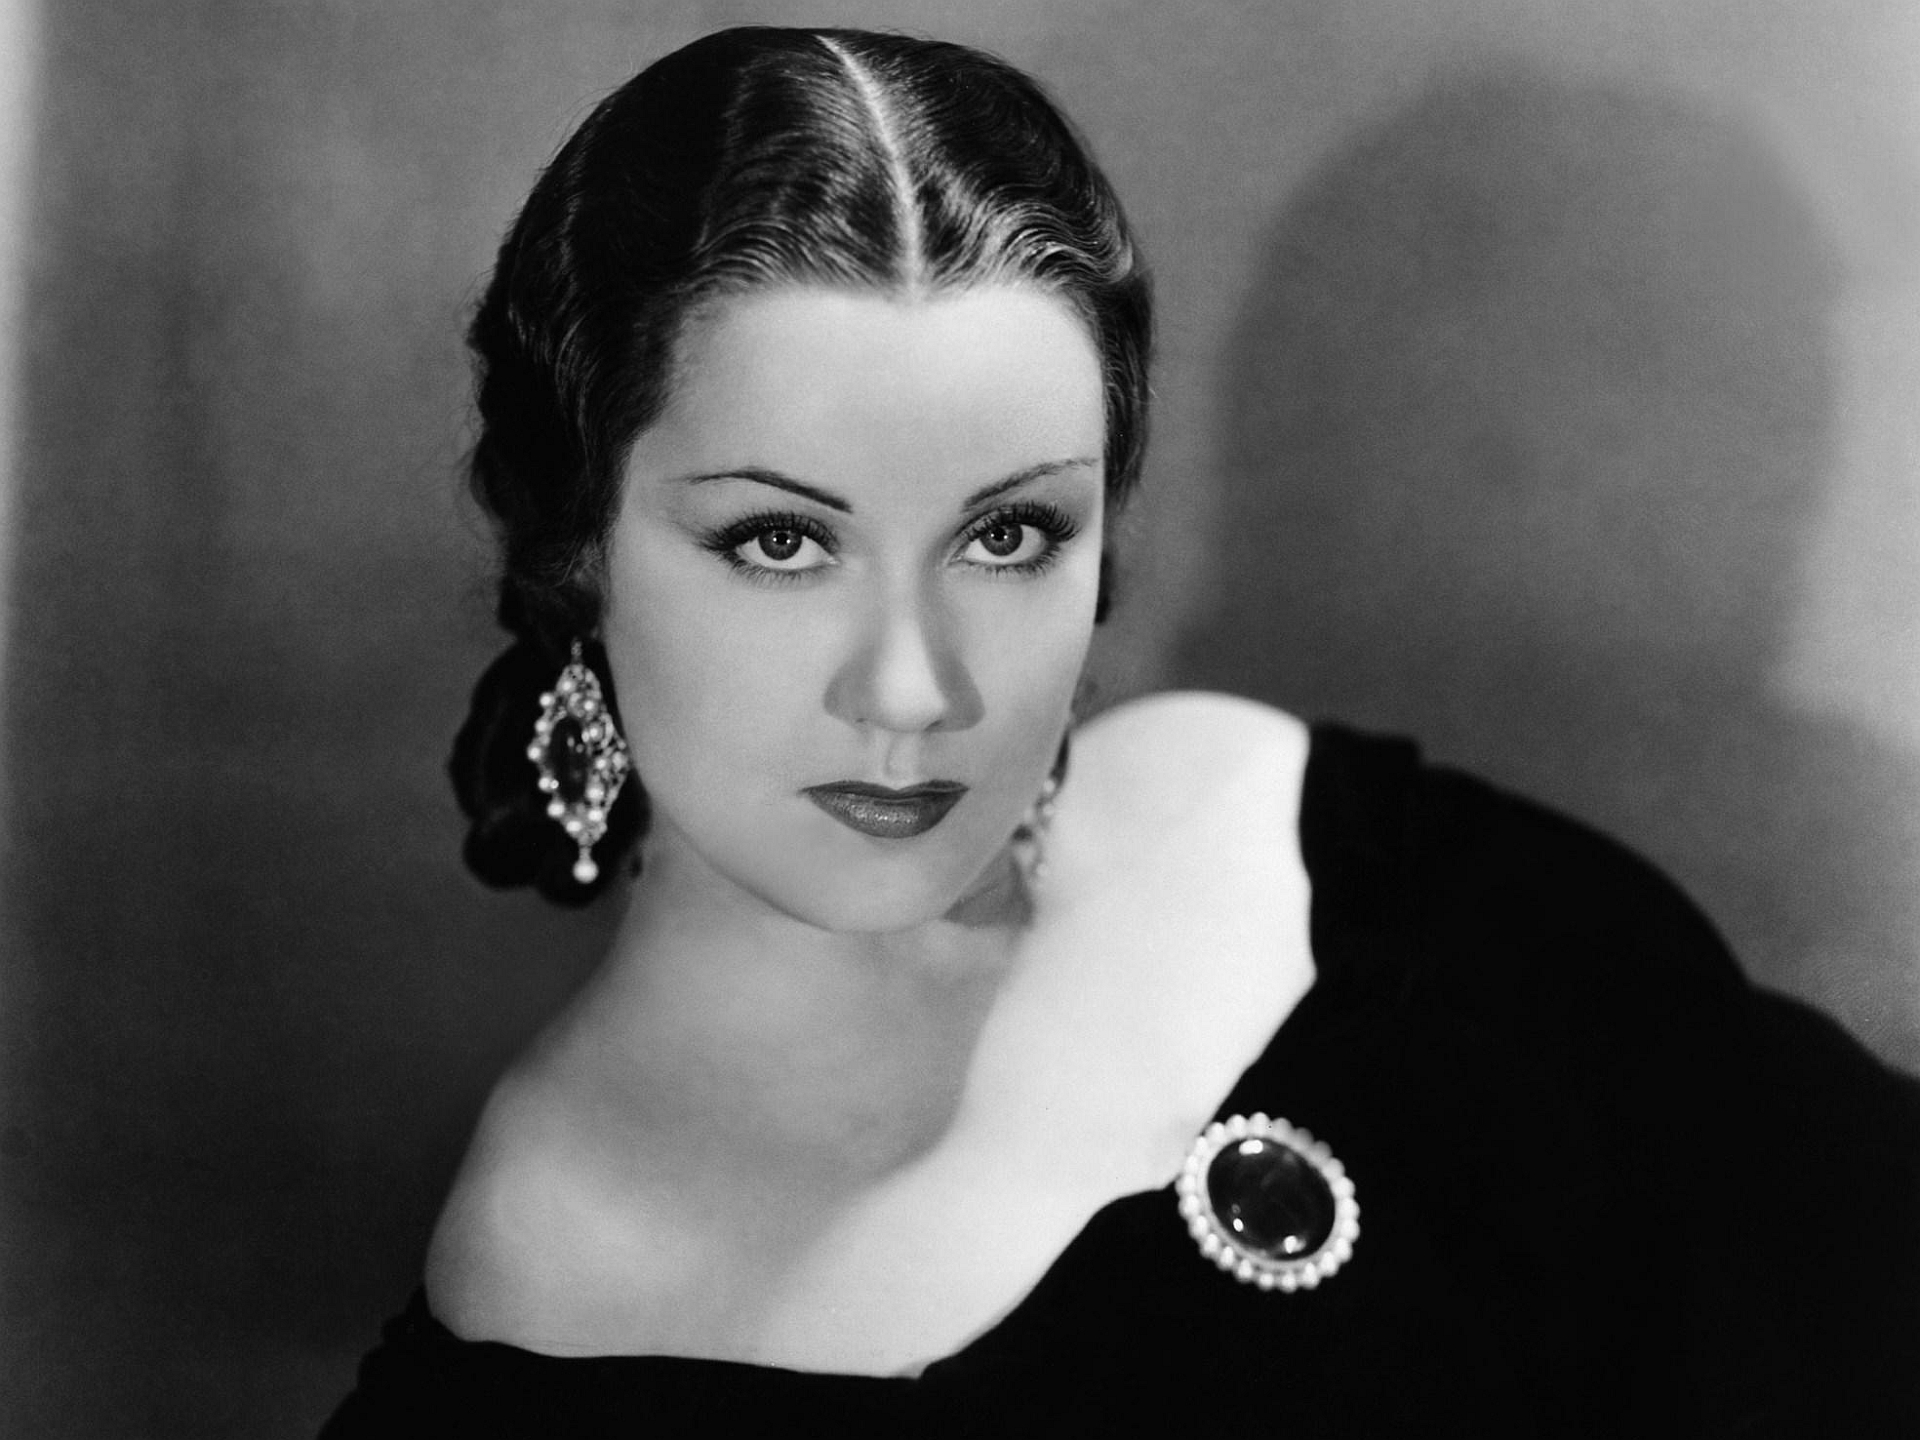 Fay Wray Wallpapers and Background Images   stmednet 1920x1440